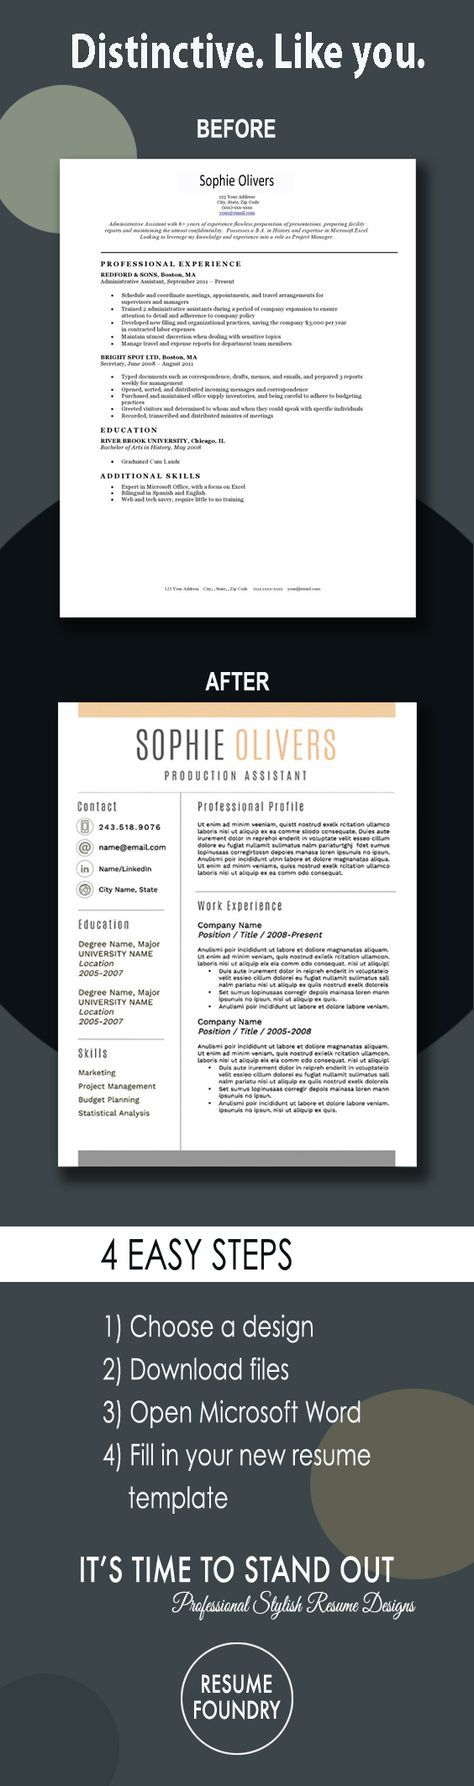 Resumes That Are Distinctive Like You  ResumesCover Letters